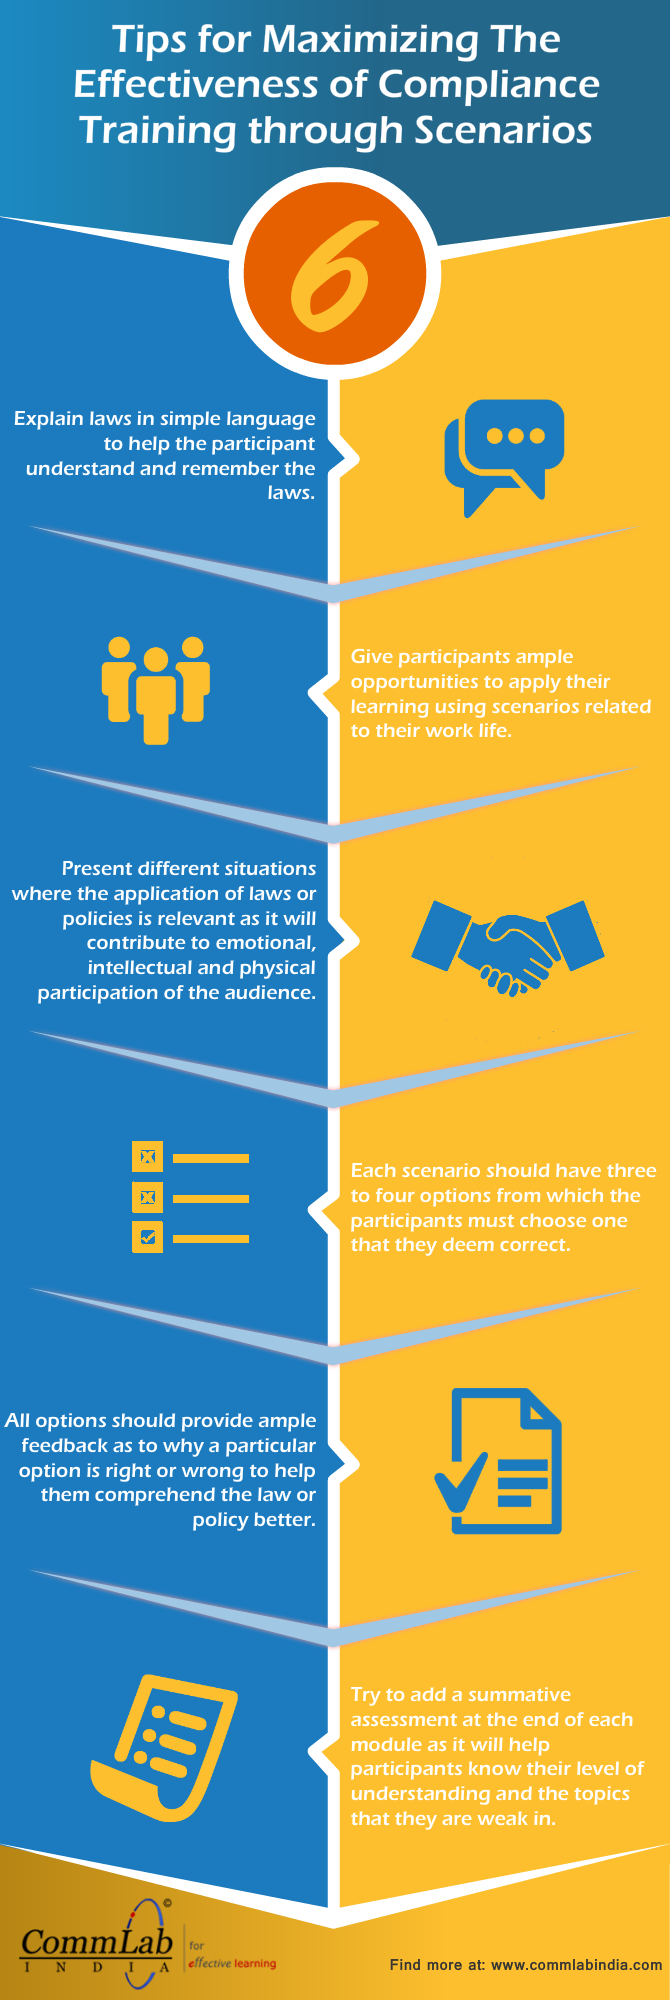 6 Tips to Maximize The Effectiveness of Compliance Training Using Scenarios [Infographic]